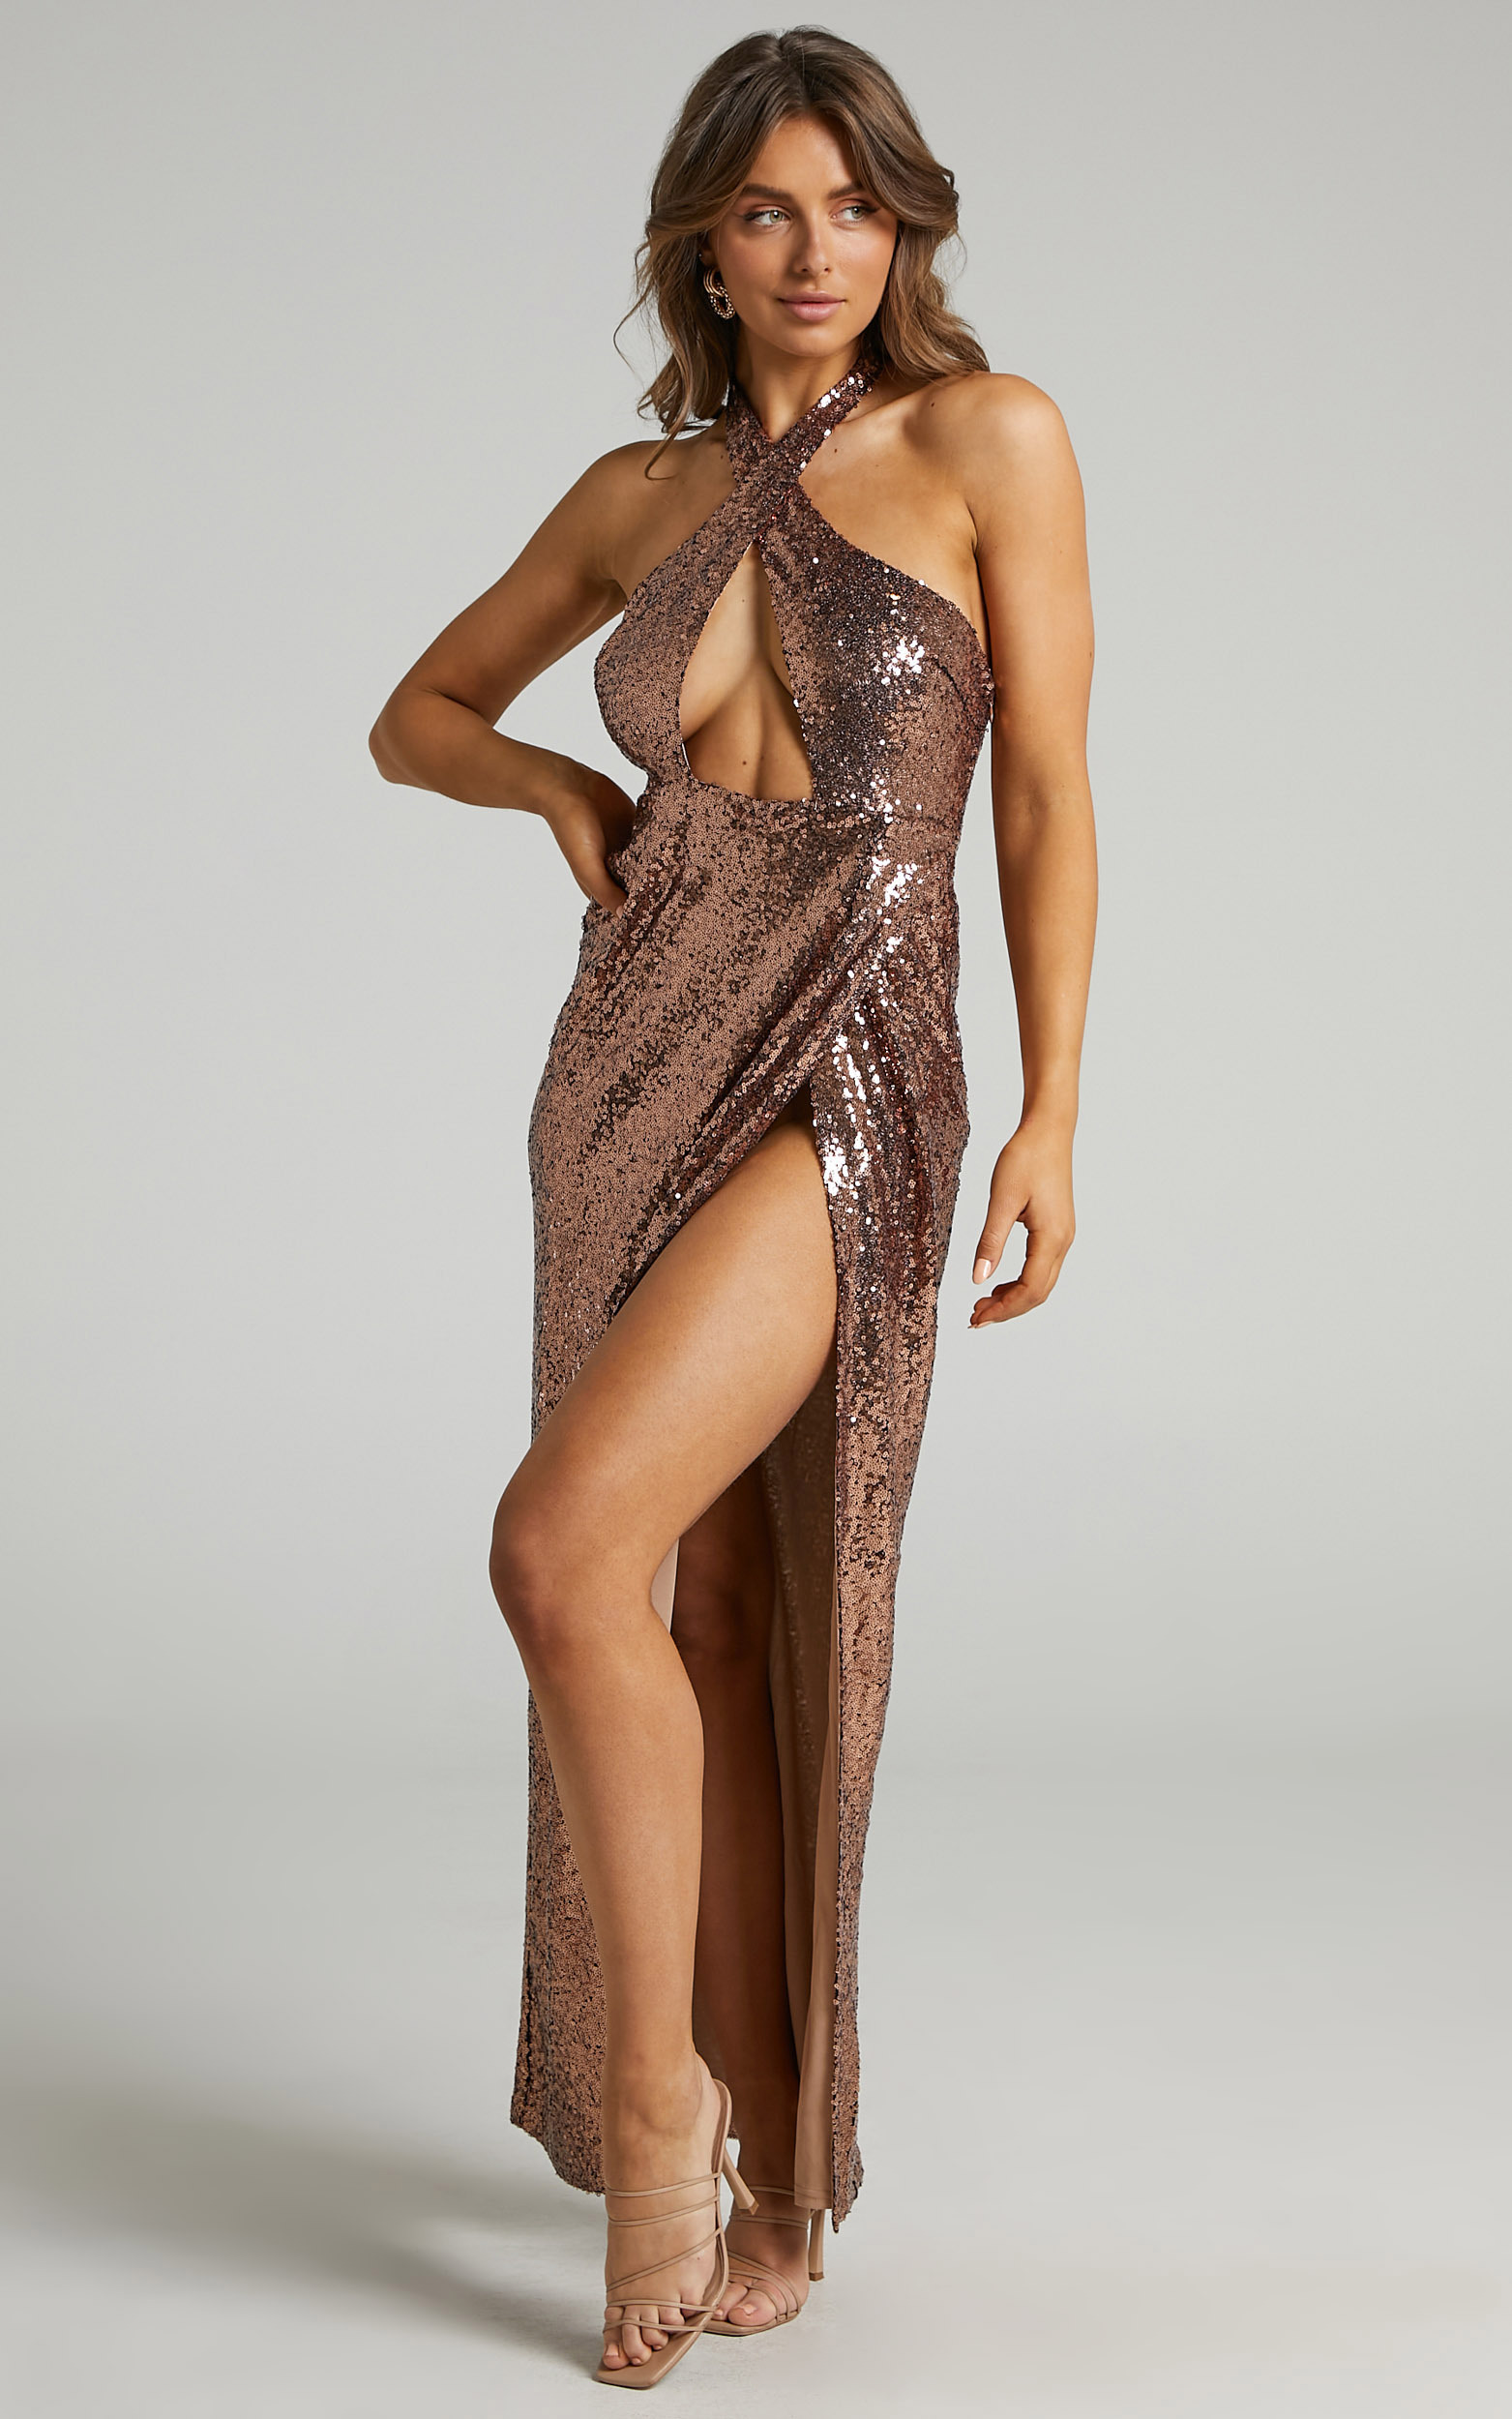 Cansas Halterneck Cut Out Maxi Dress in Chocolate Sequin - 06, BRN1, hi-res image number null